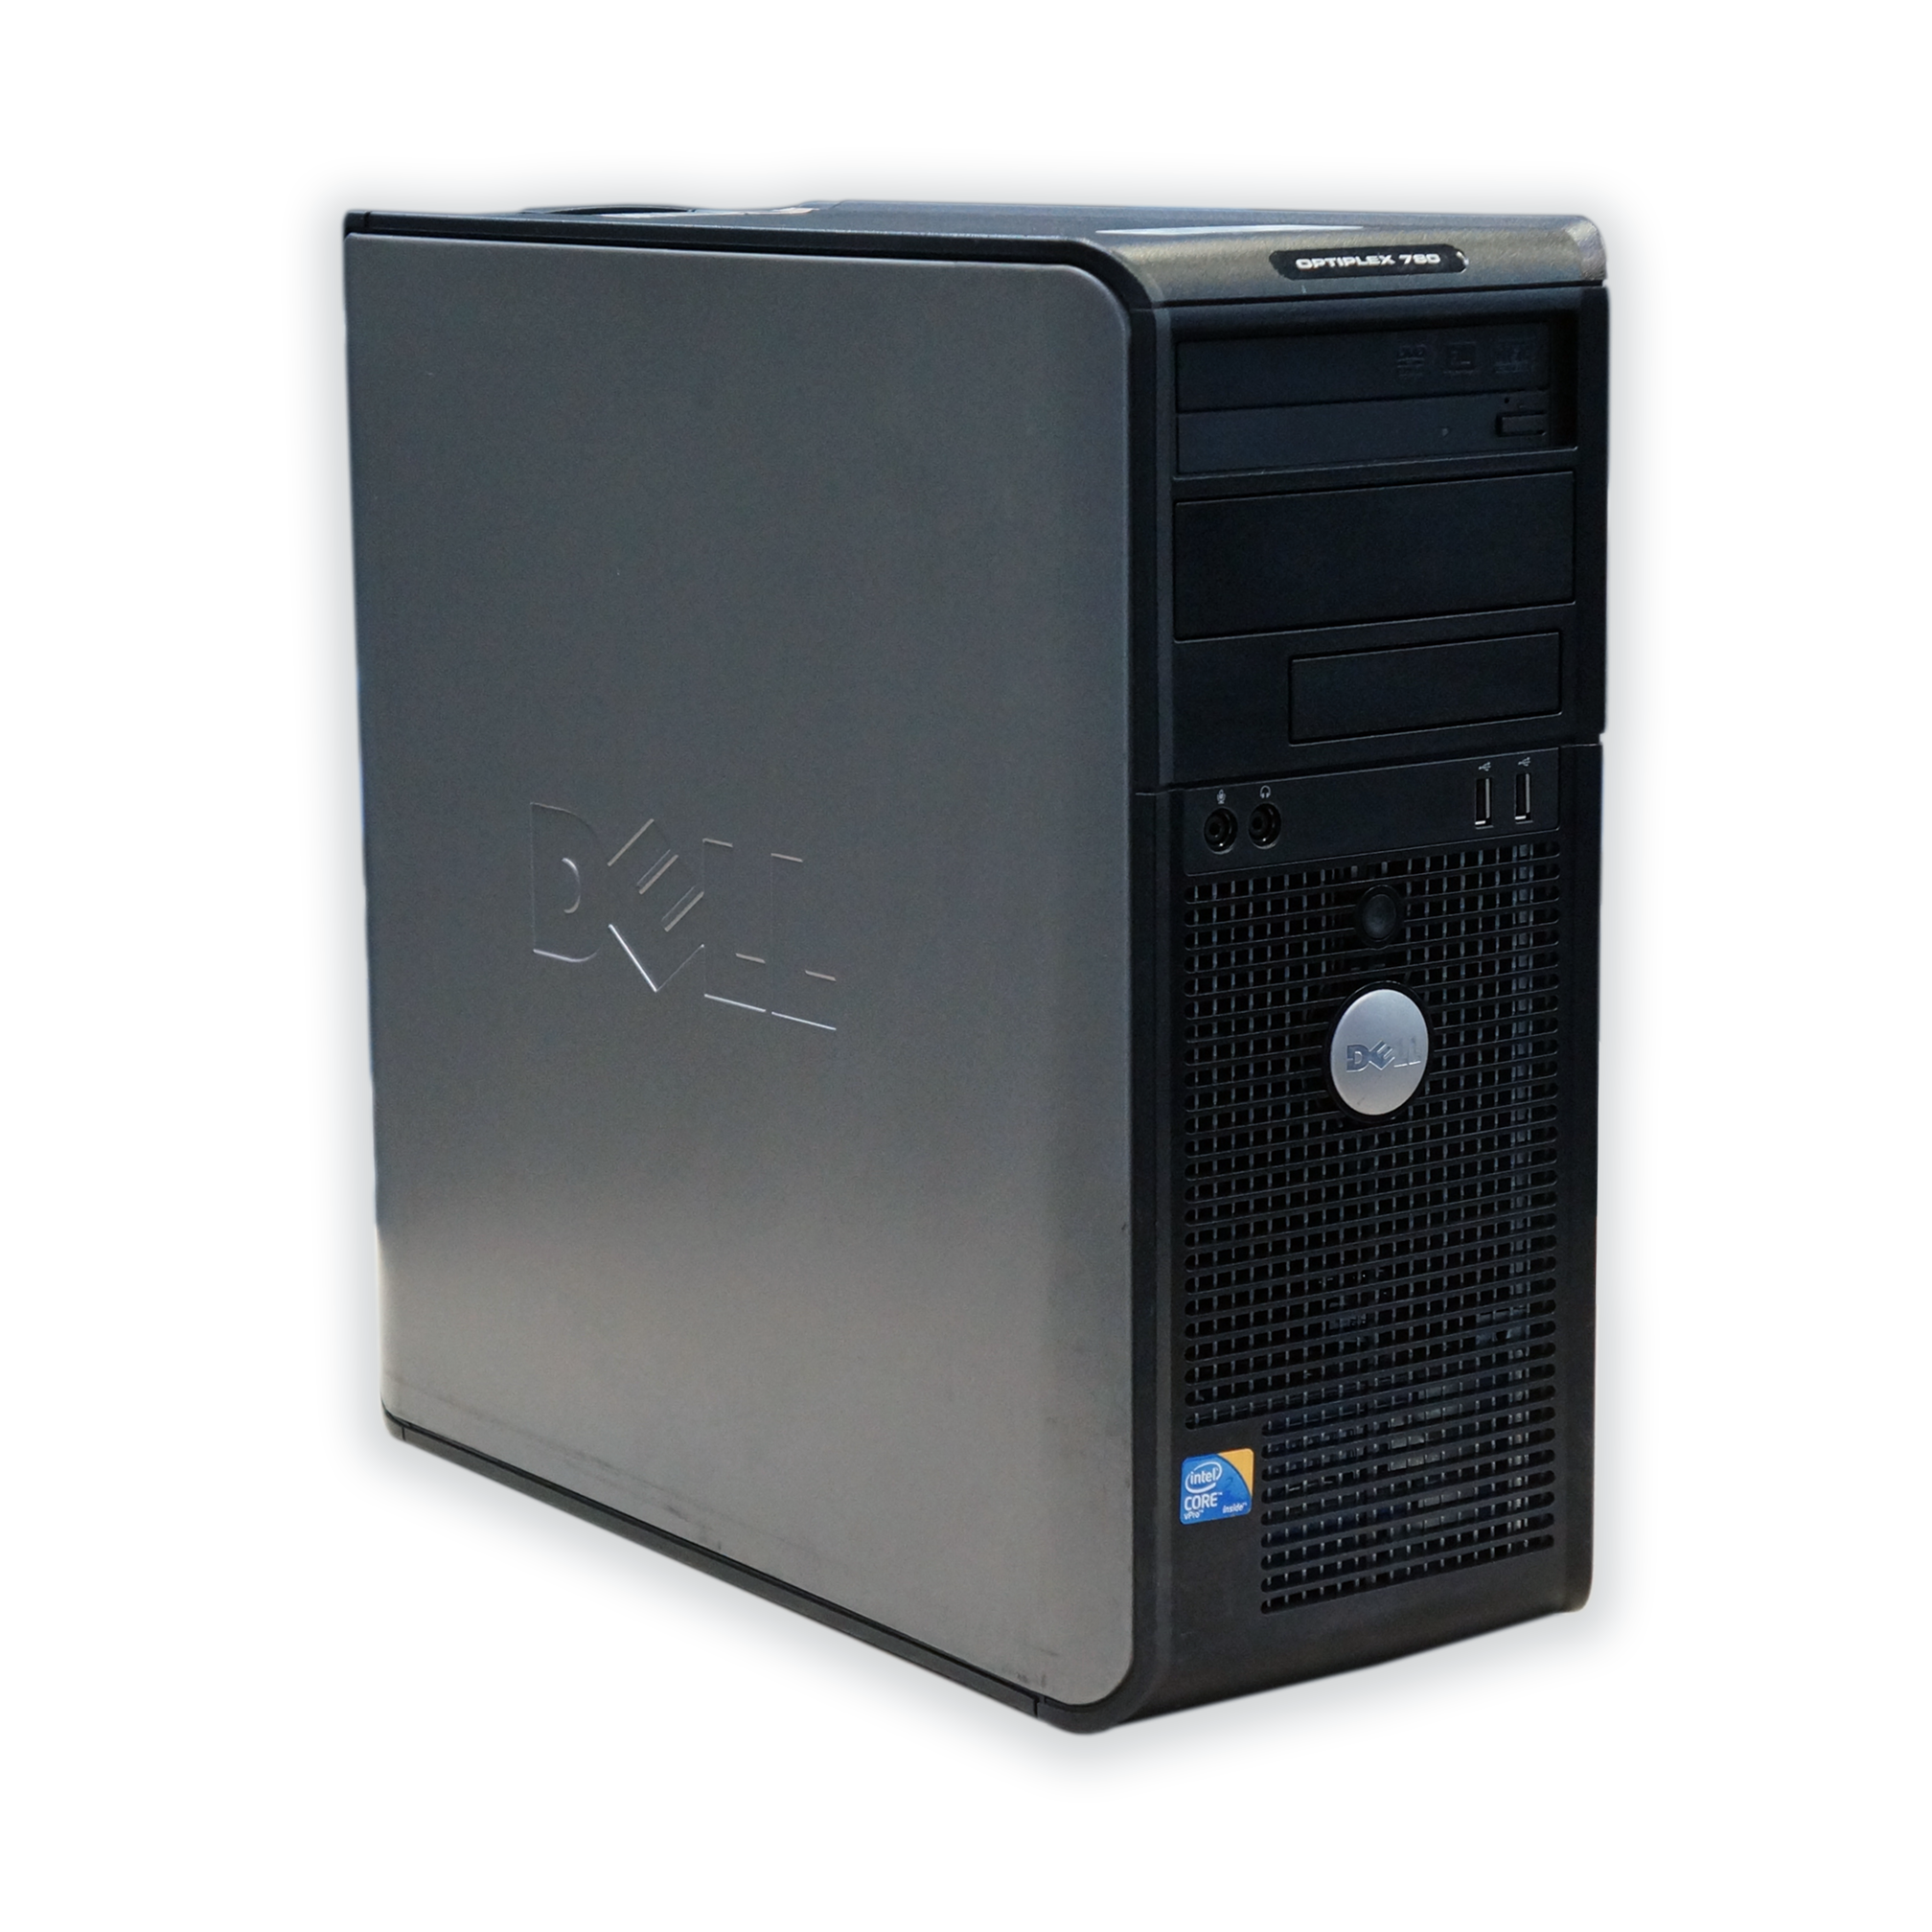 Počítač Dell OptiPlex 780 tower Intel Core 2 Duo E8400 3,0 GHz, 4 GB RAM, 160 GB HDD, Intel GMA, DVD-RW, COA štítek Windows 7 PRO